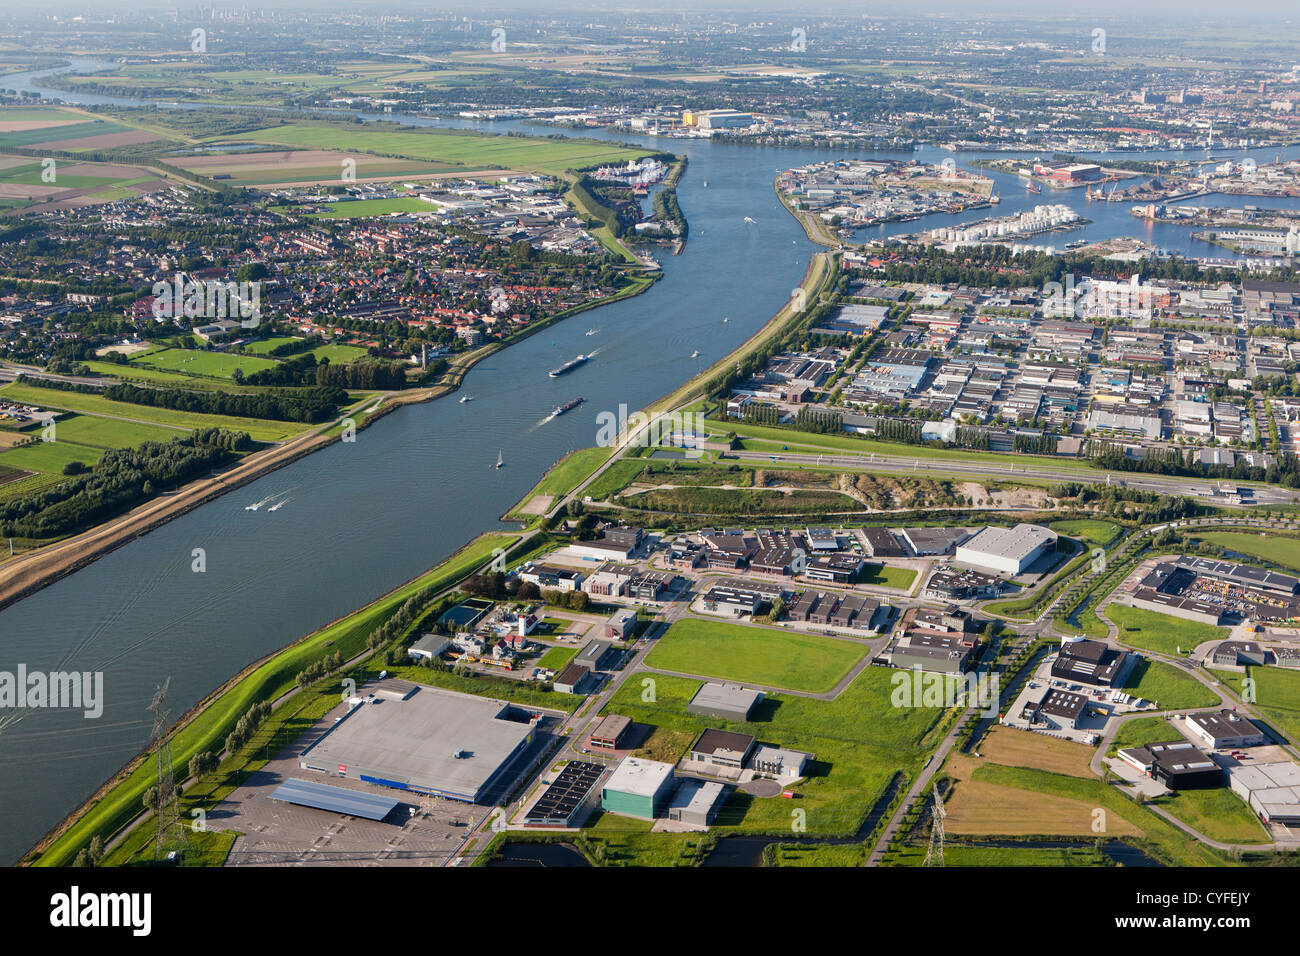 The Netherlands, Dordrecht, boats in river called Dordtse Kil. Left the village of 's-Gravendeel. Right industrial - Stock Image